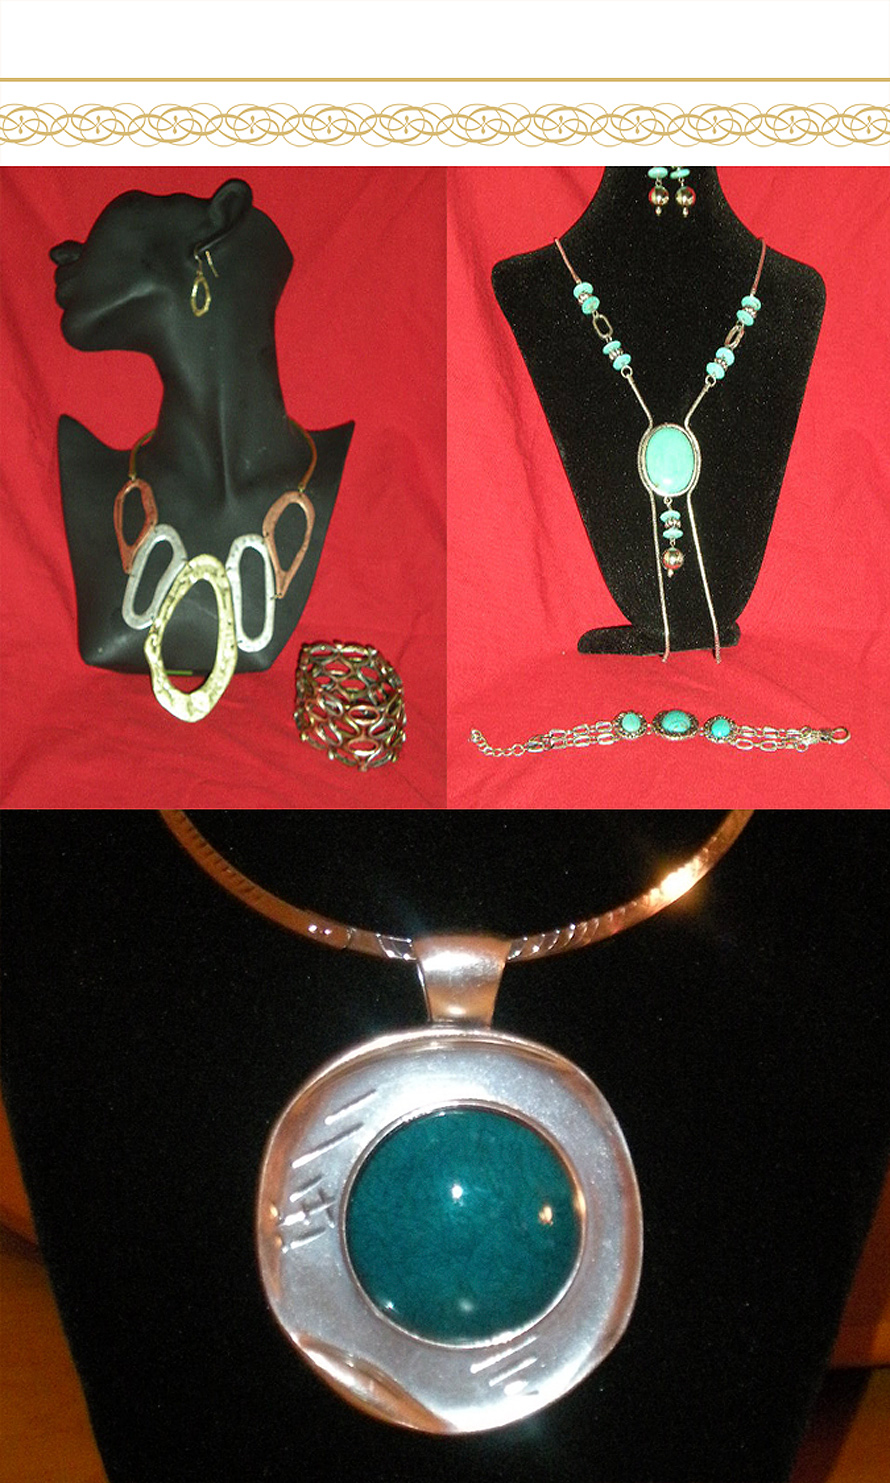 Exclusive Jewelry Pieces and Handbags